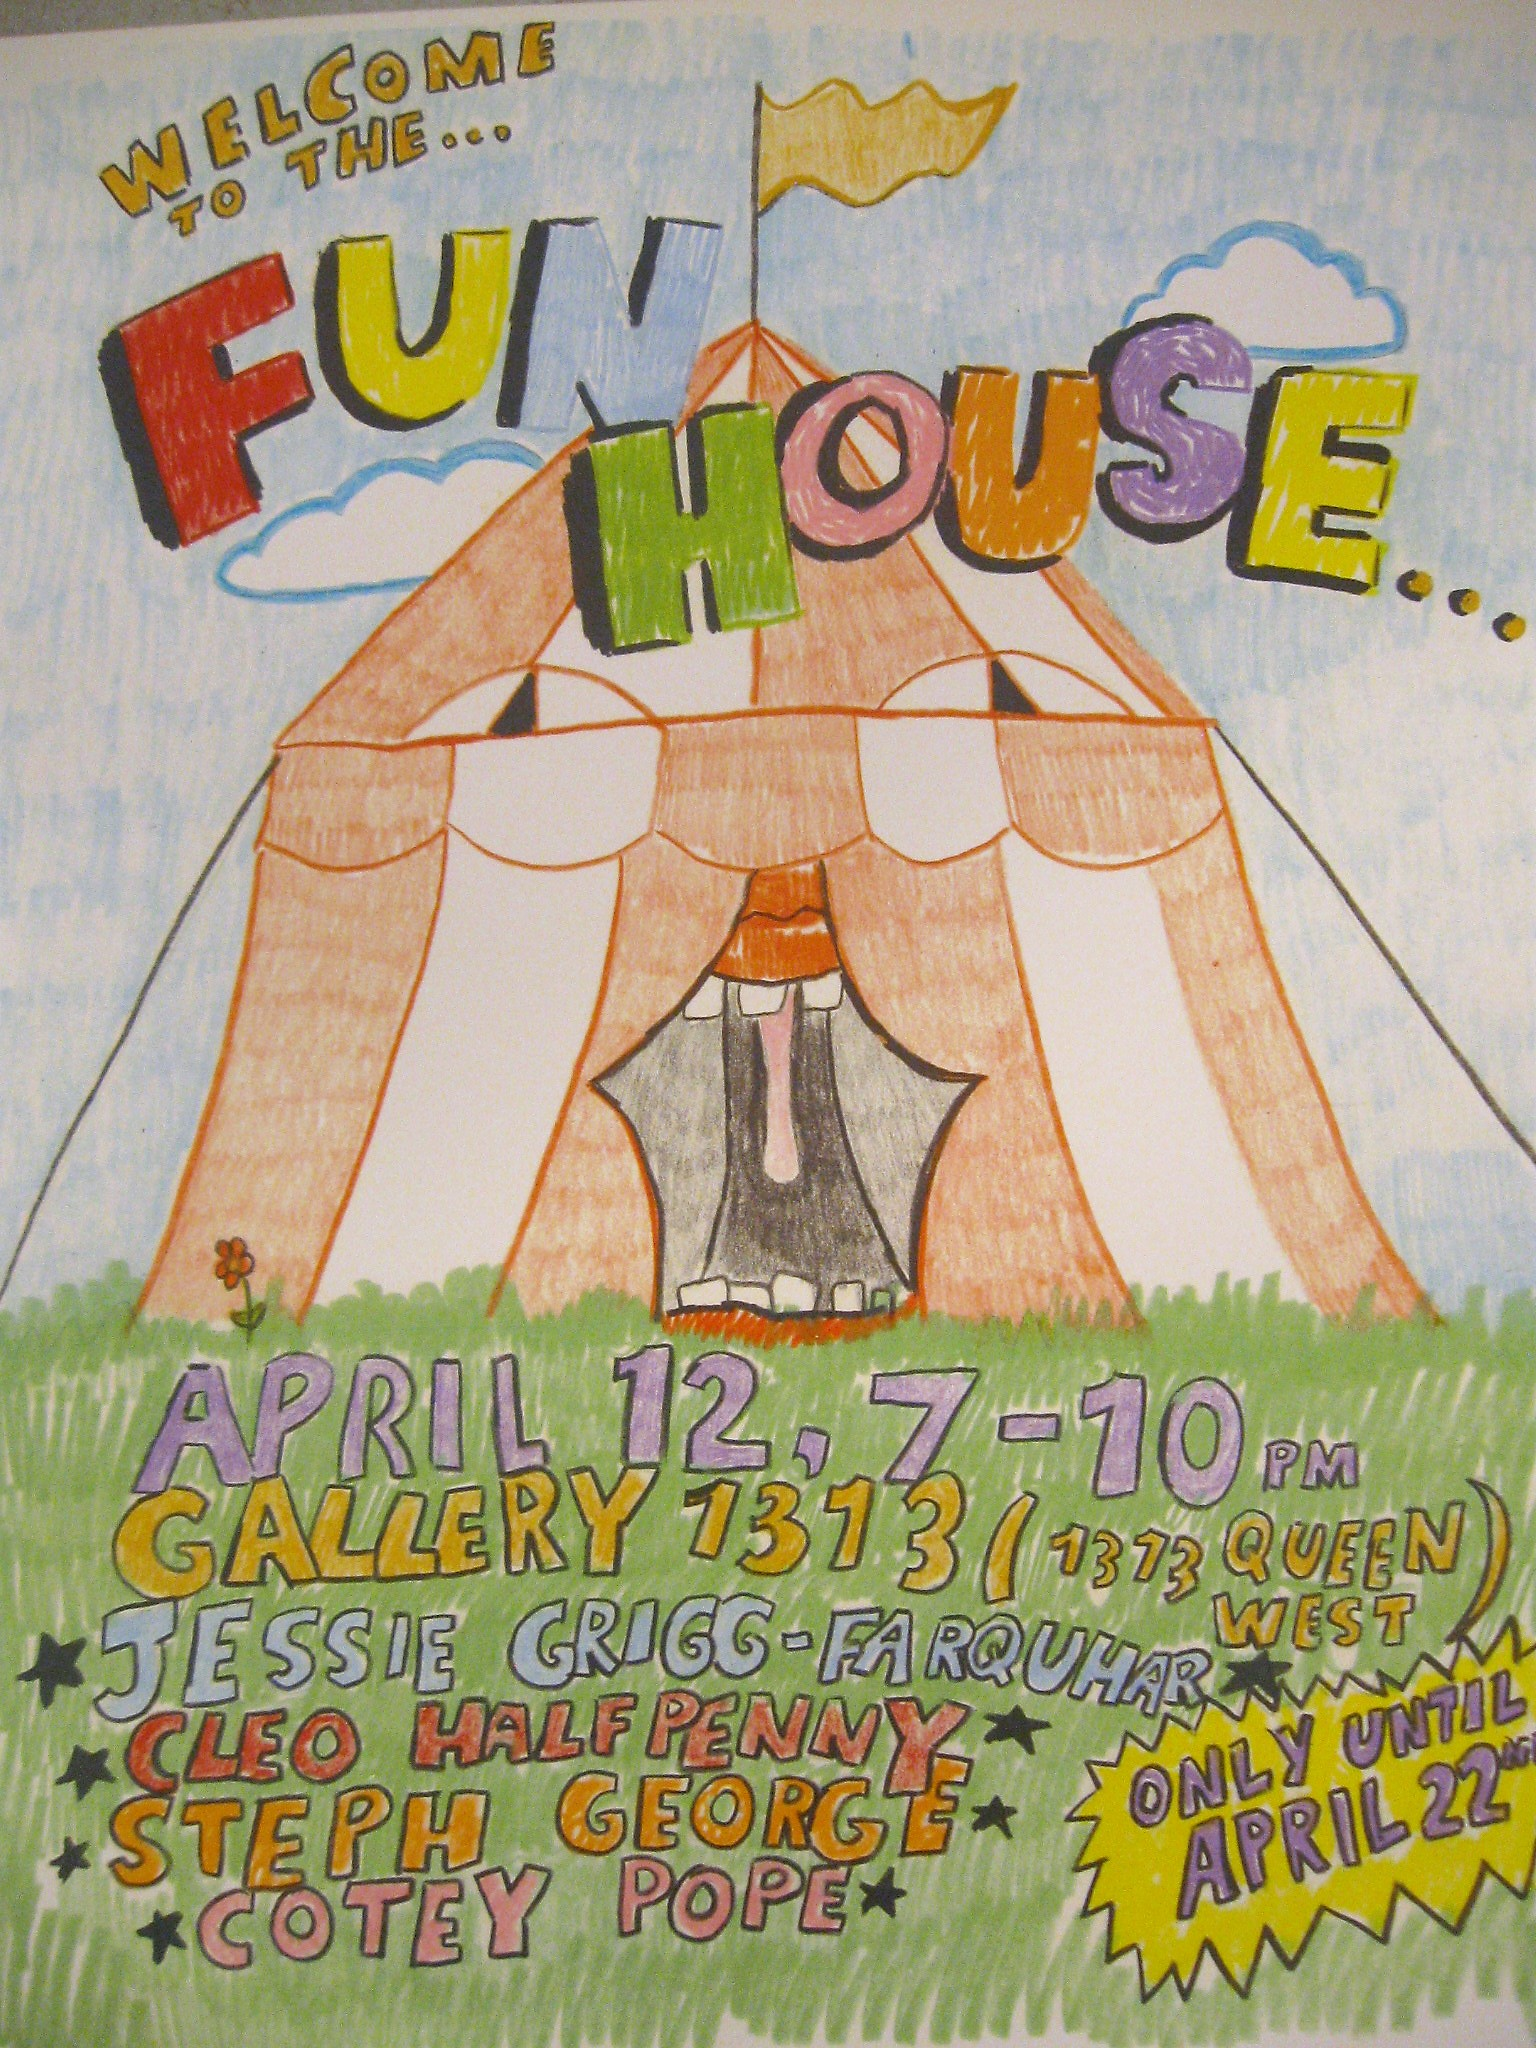 WELCOME TO THE FUN HOUSE – OCADU – April 11 – 22